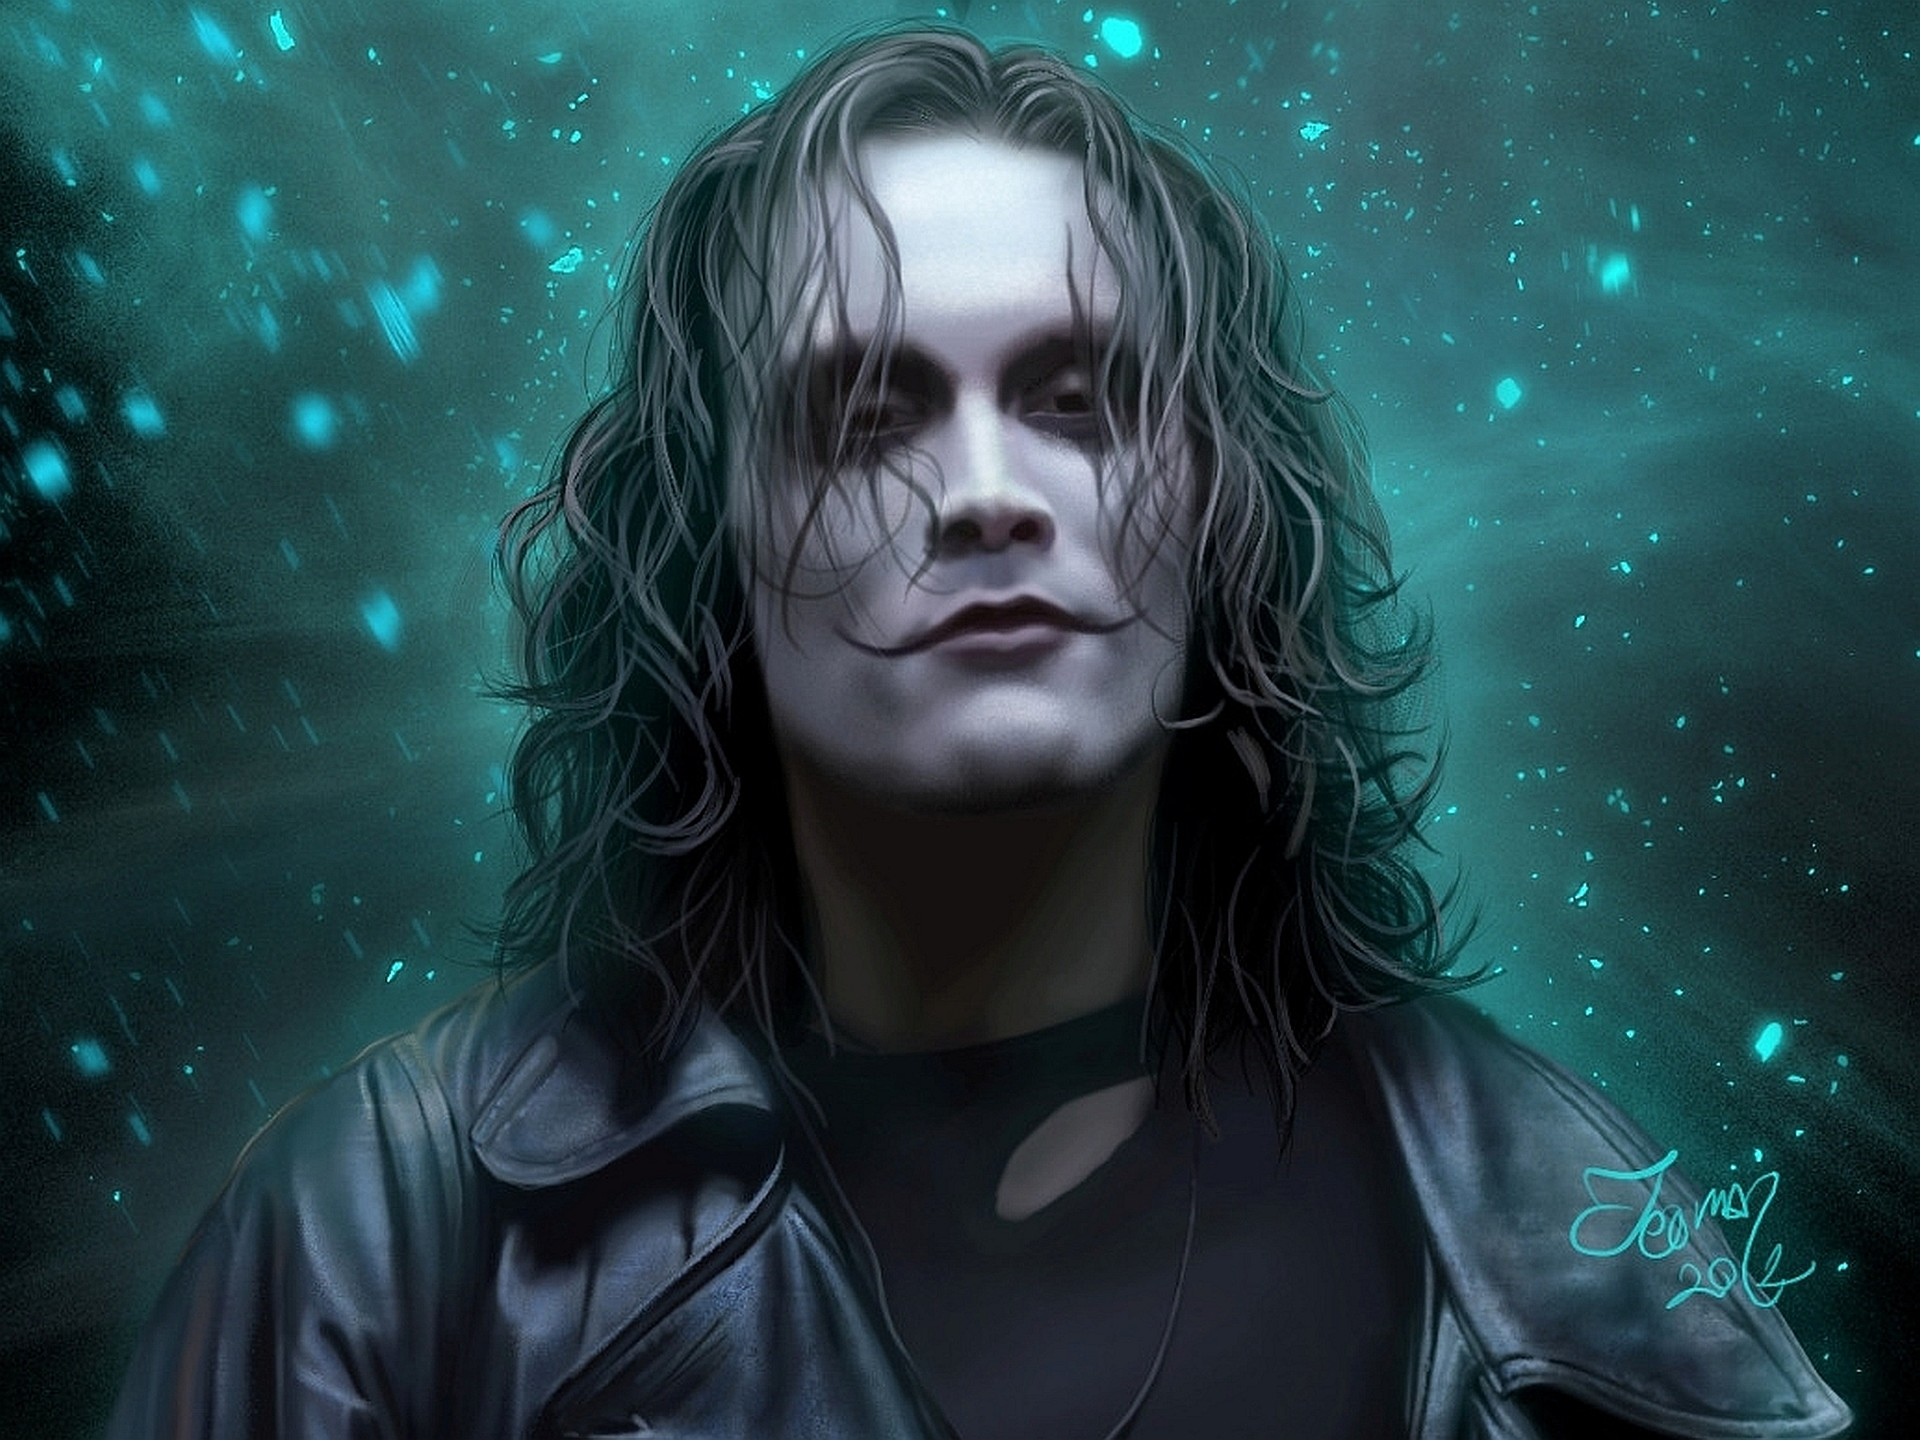 1000+ images about the crow on Pinterest   Instrumental, Pictures and Search